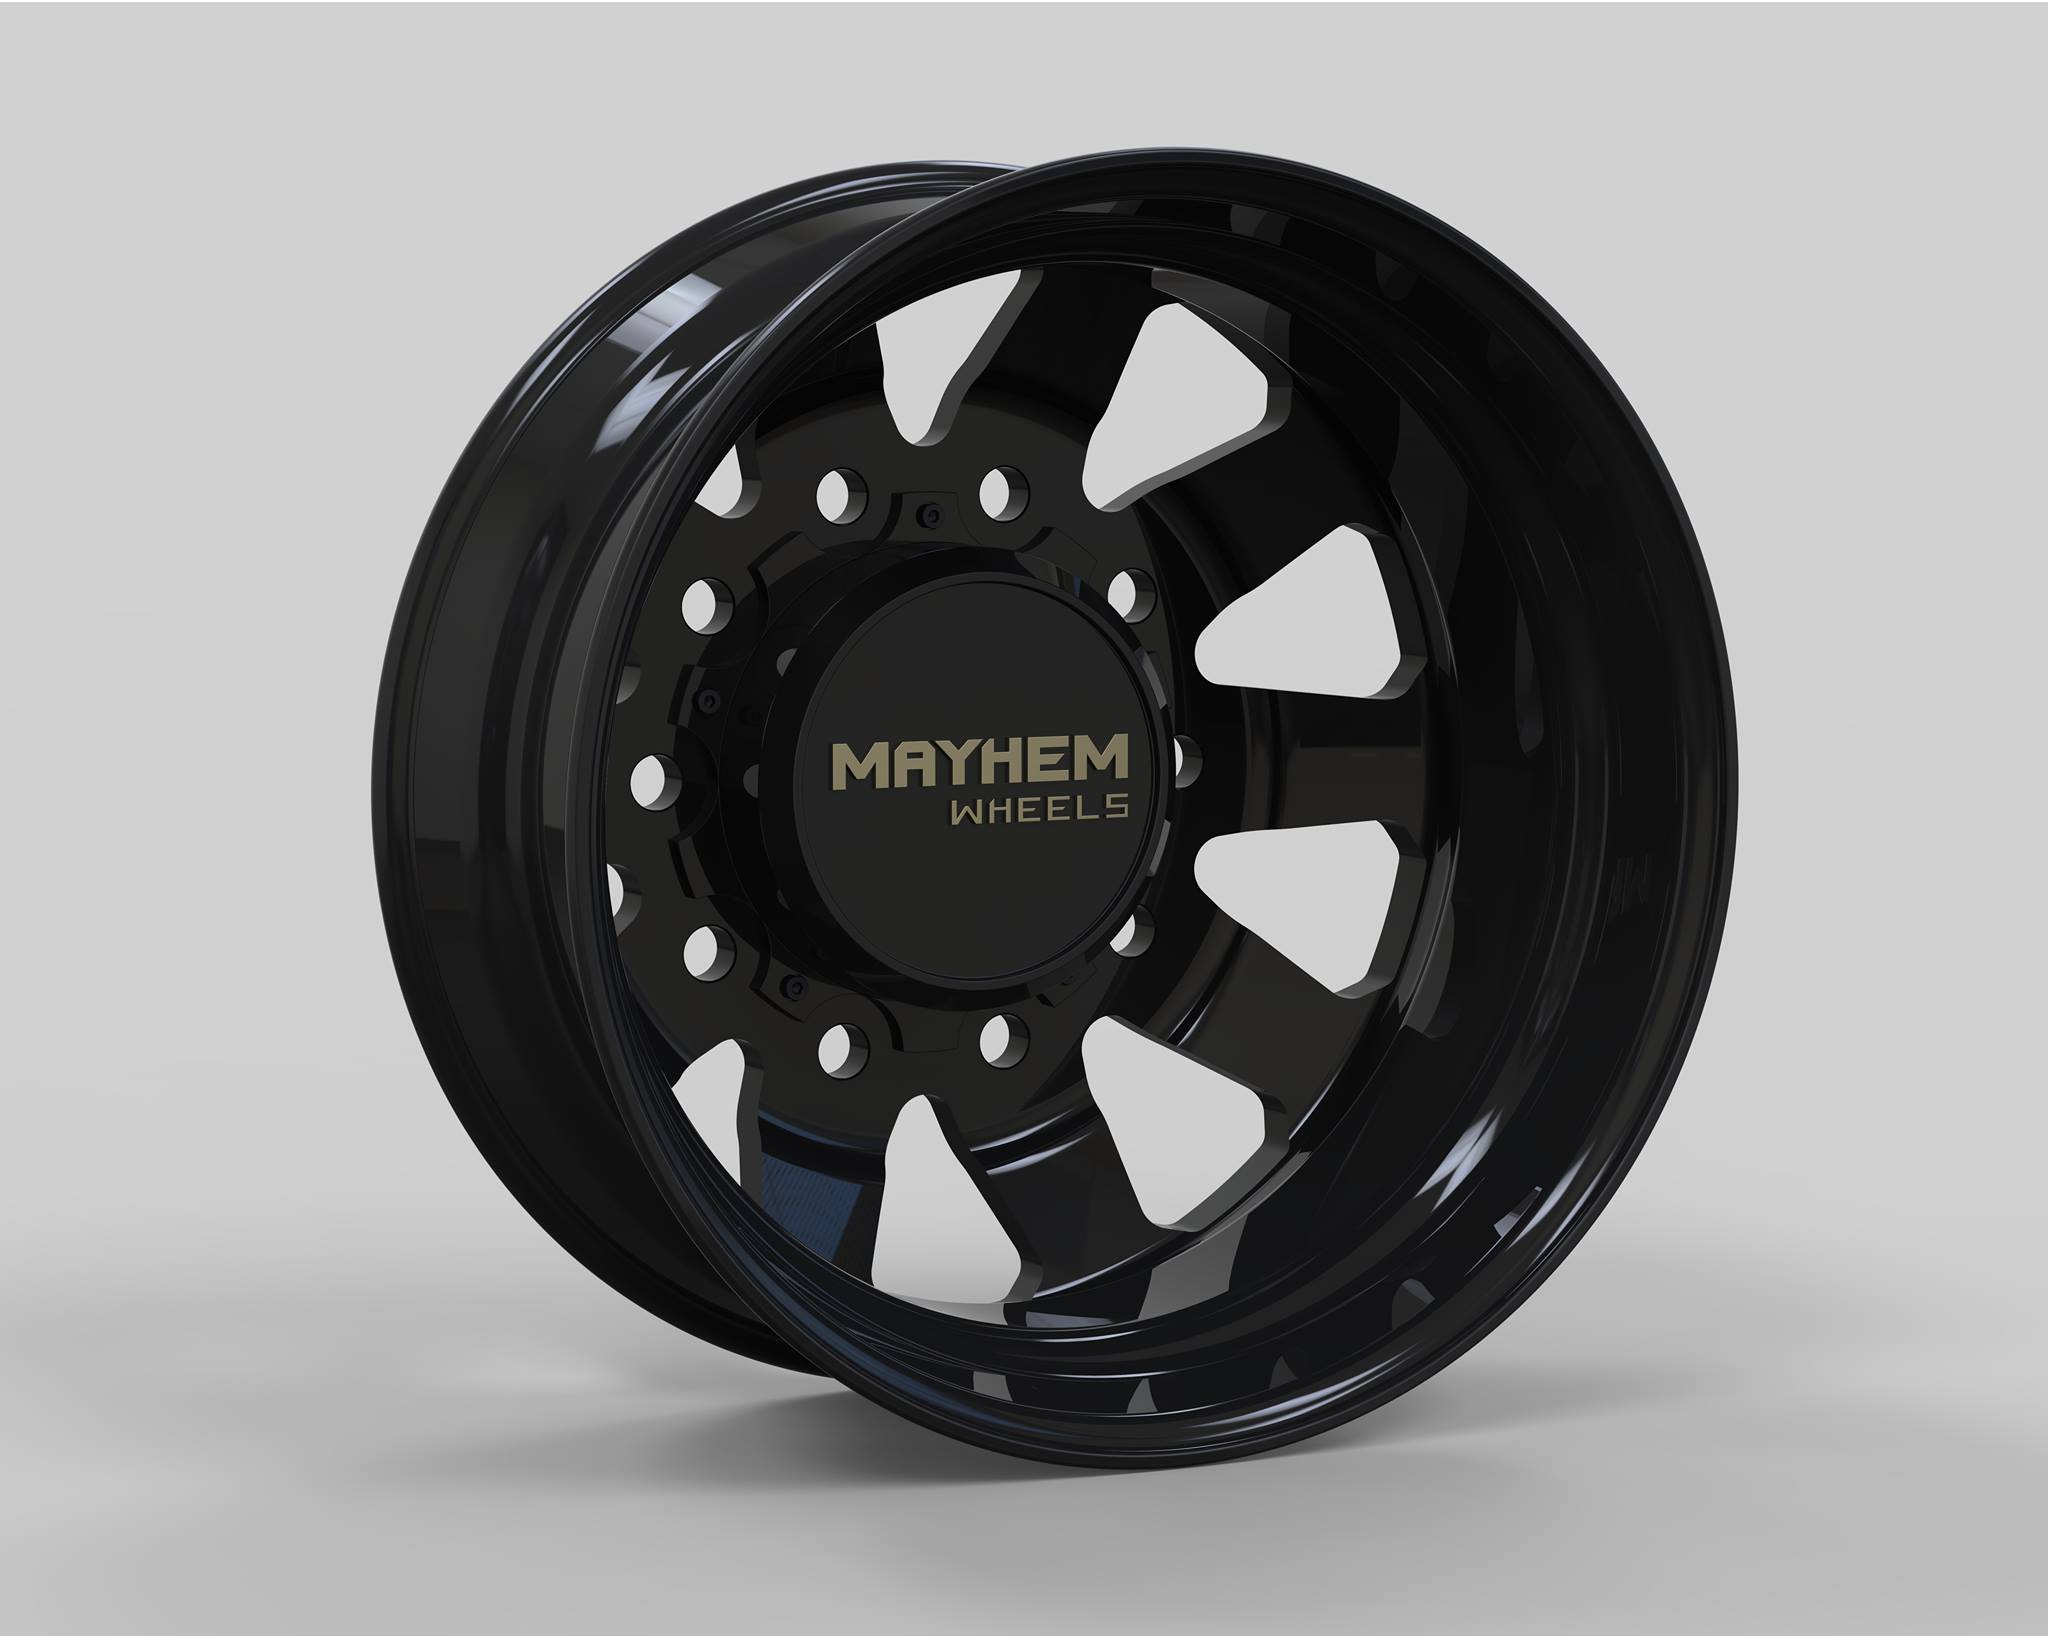 22x8.25 Mayhem Challenger Polished or Gloss Black 10x225 Dually Wheels Package